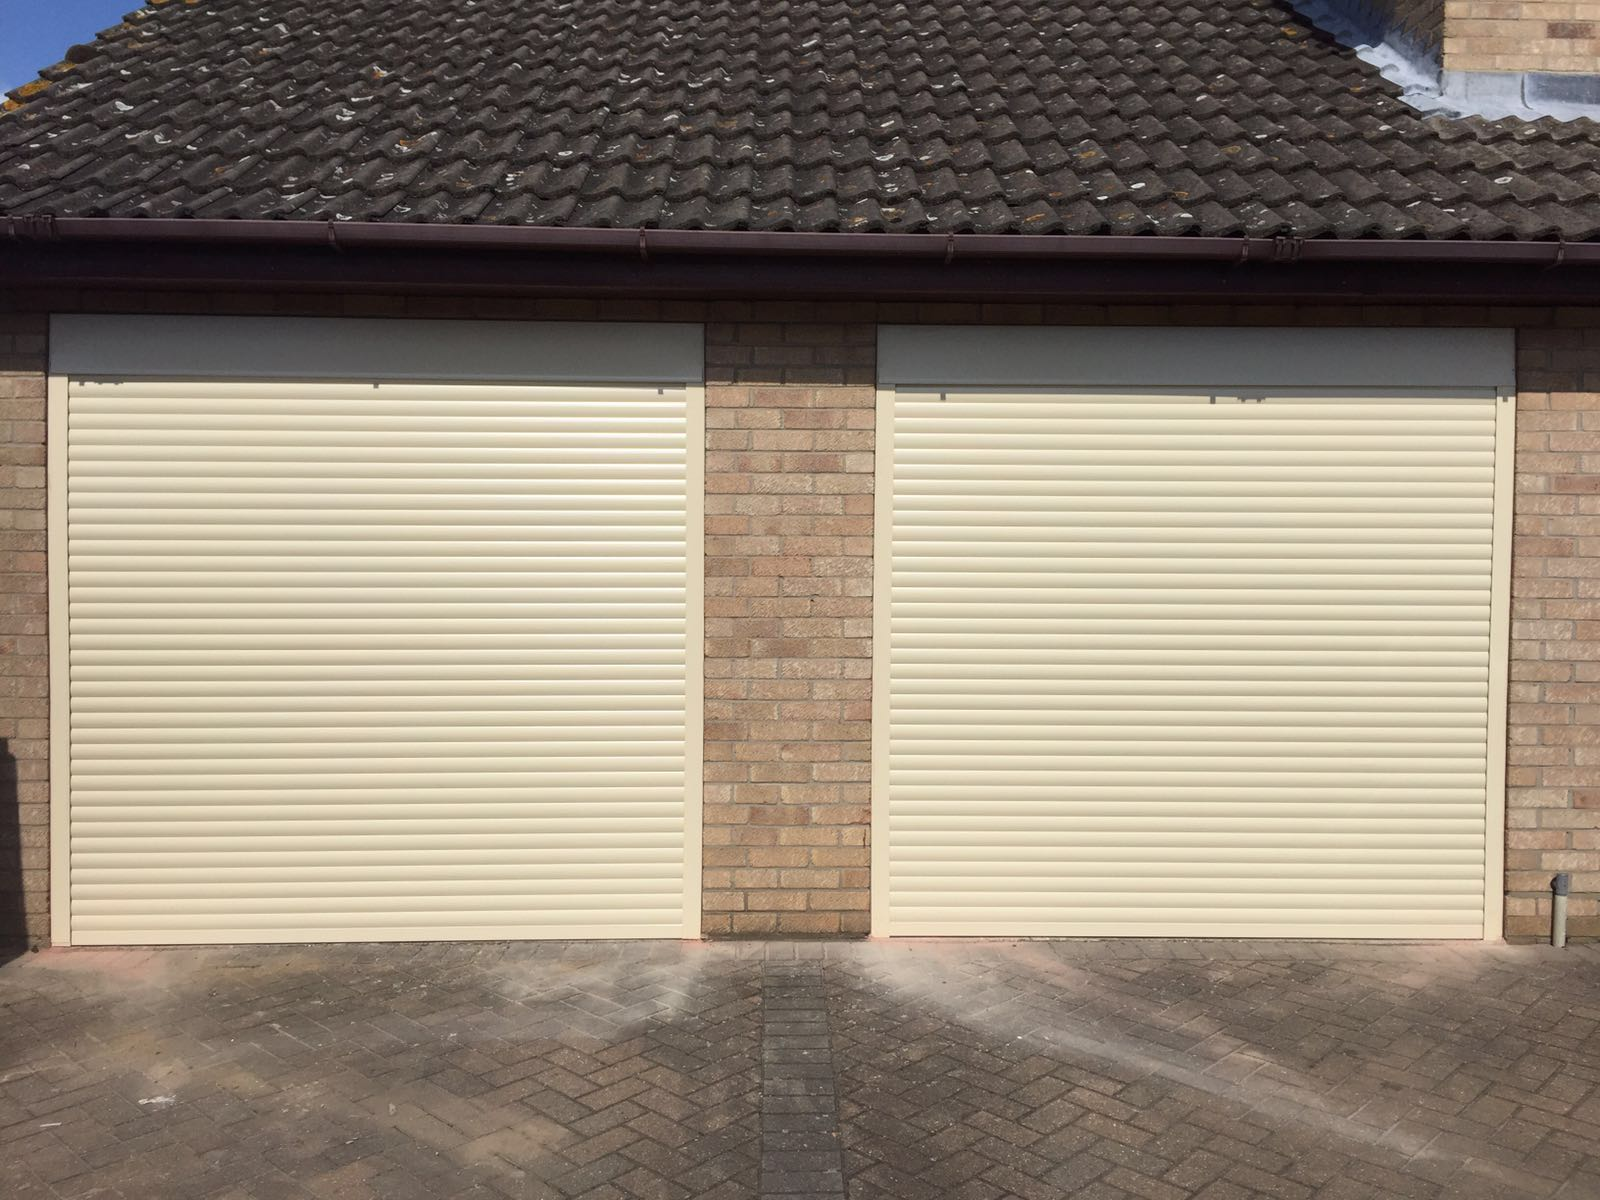 Roller Garage Door Prices Price Calculator Rollerdor